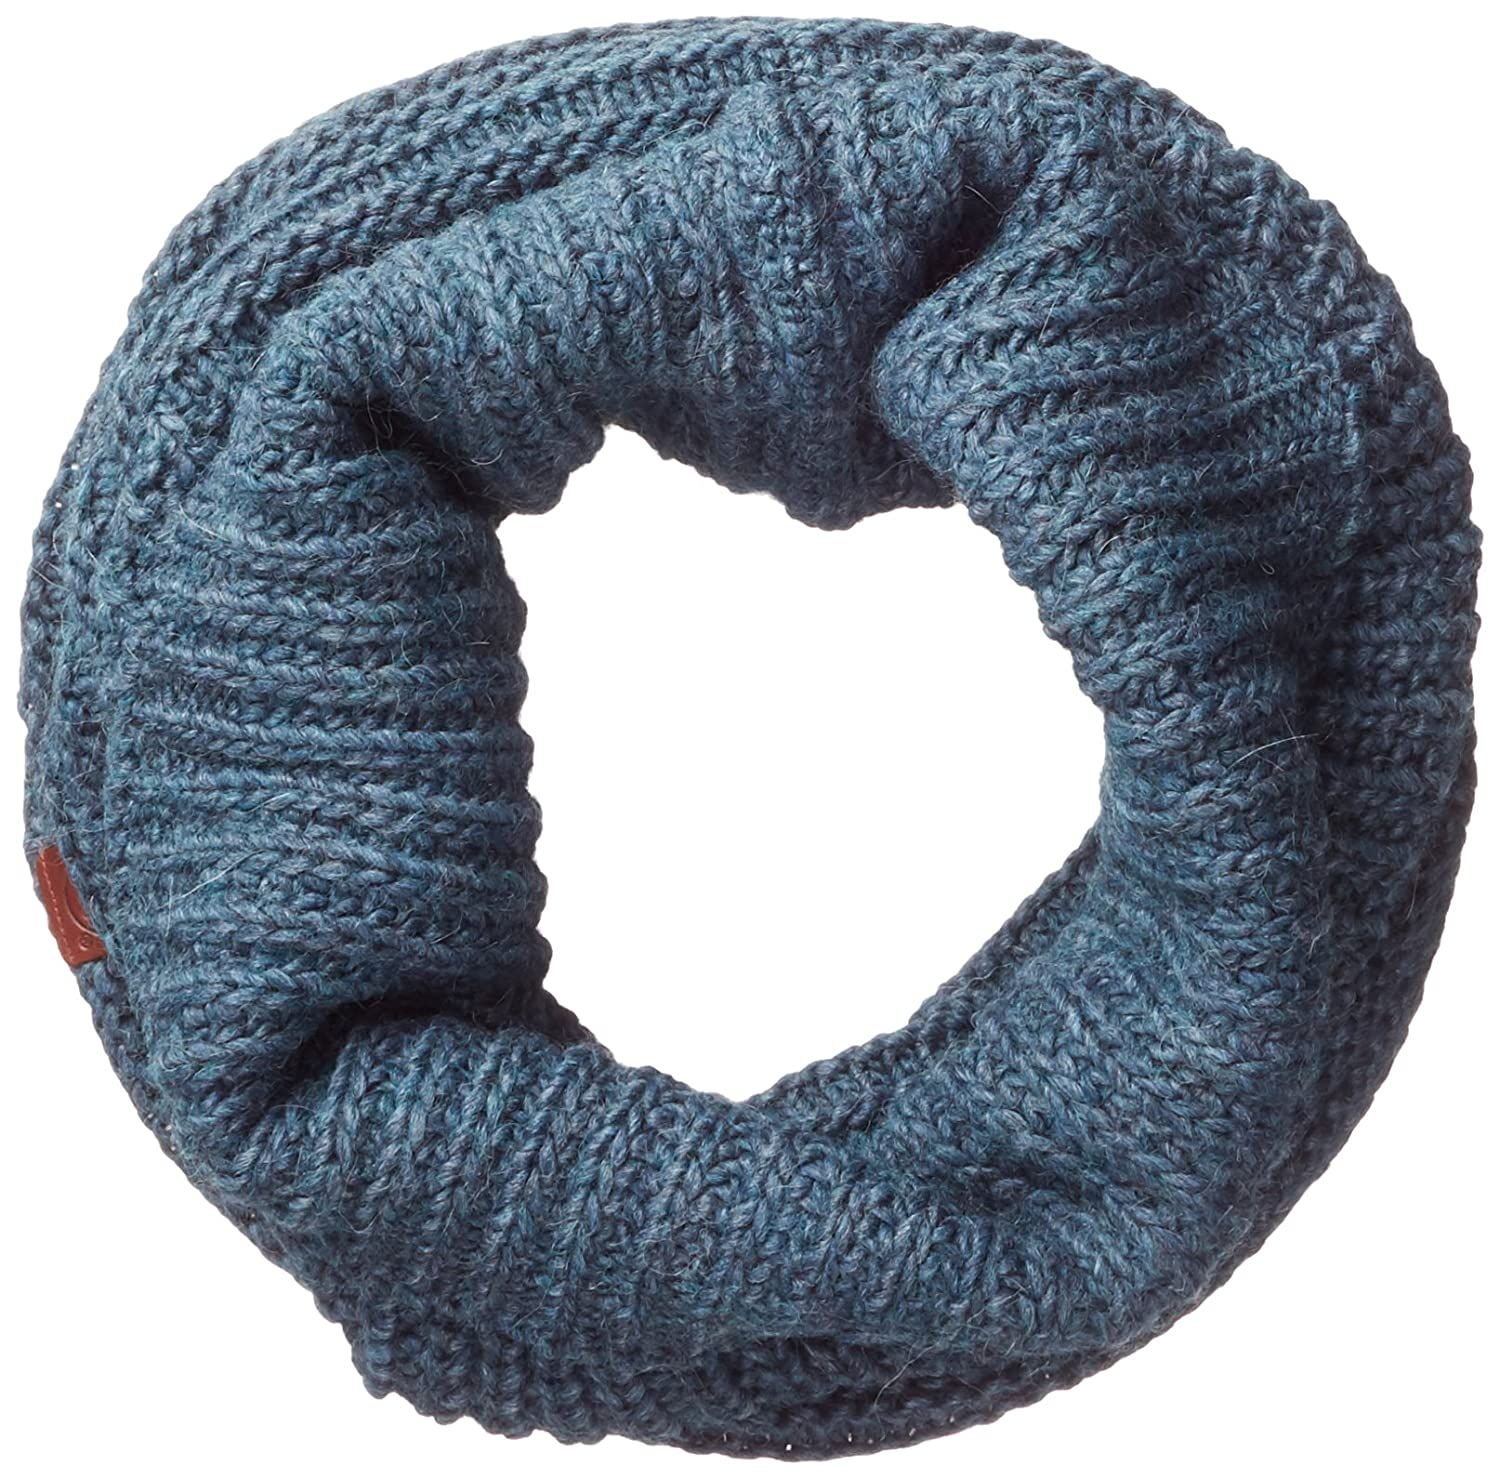 Buff Knitted Collar Gribling Schlauchschal Steel Blue One Size Original Buff S.A. 1234.701